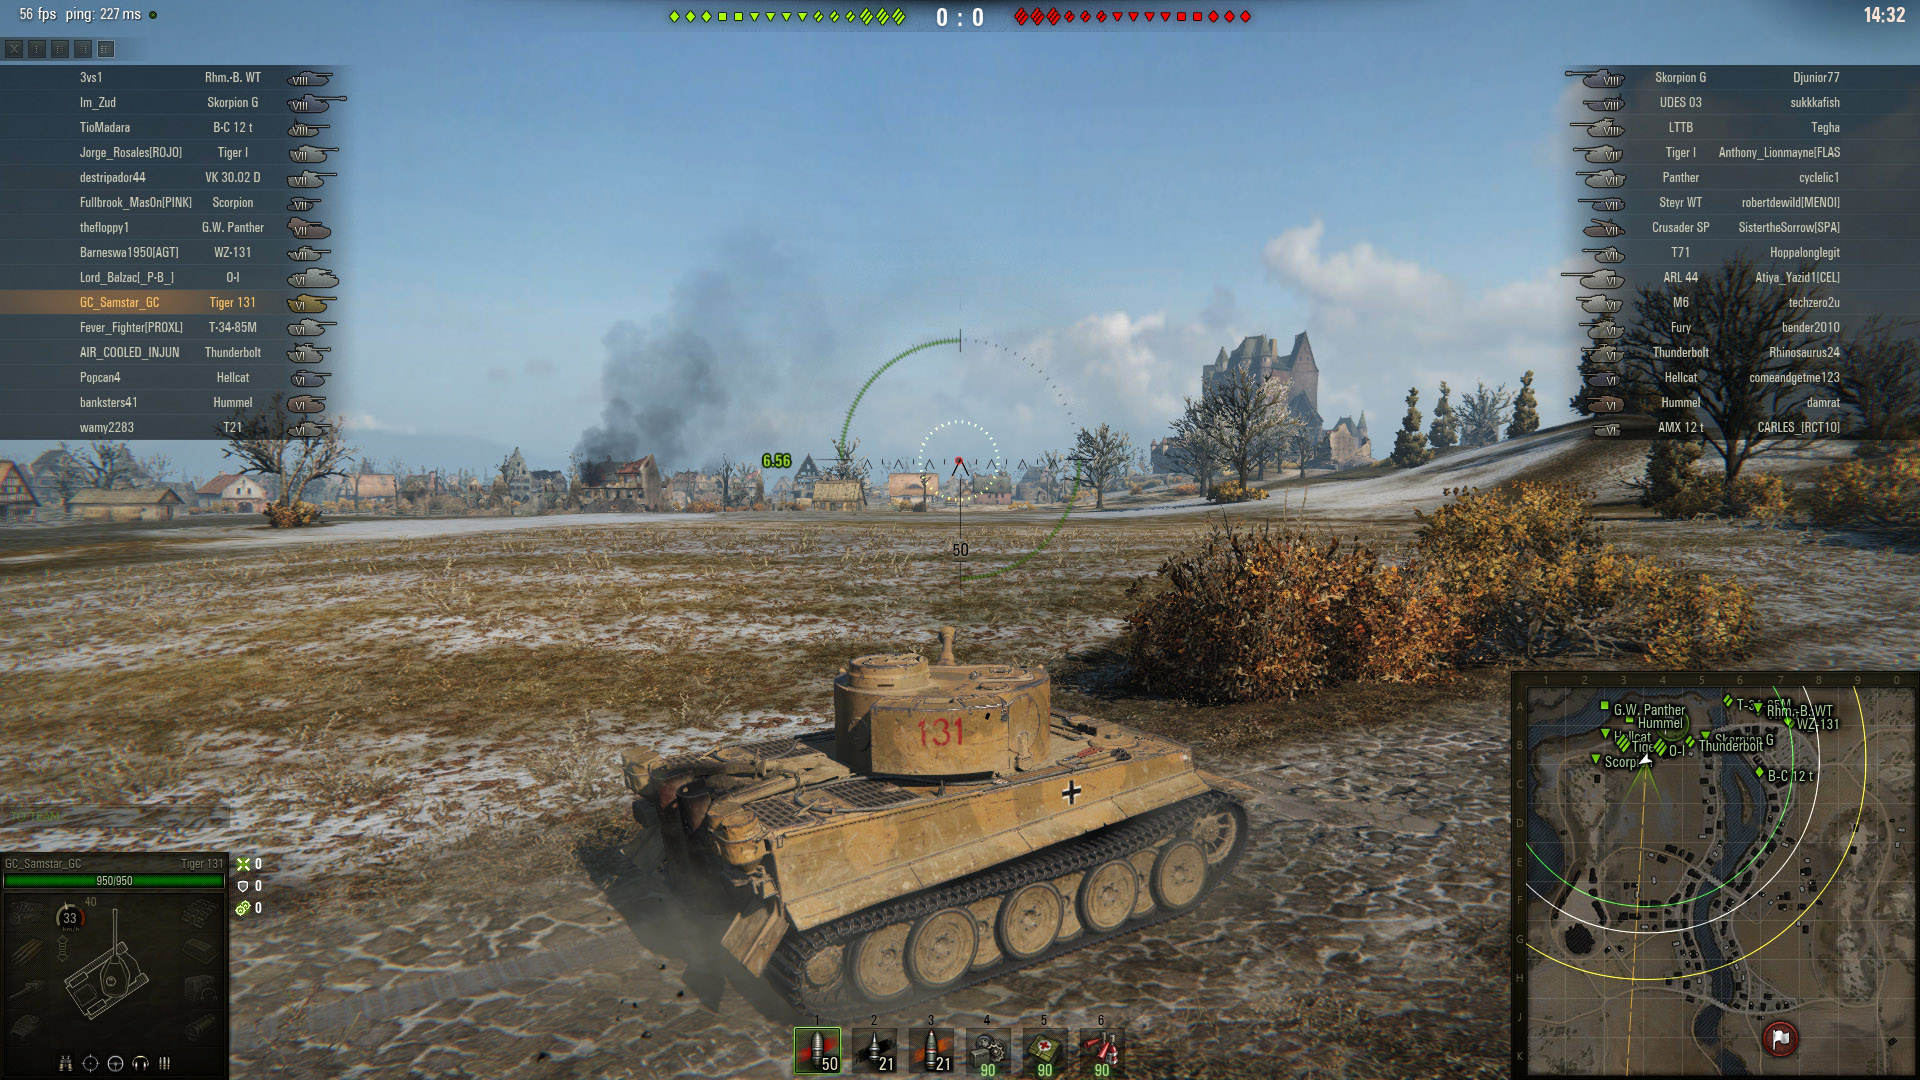 The Tiger 131 is able to quickly get into position at the start of the match thanks to its impressive speed.